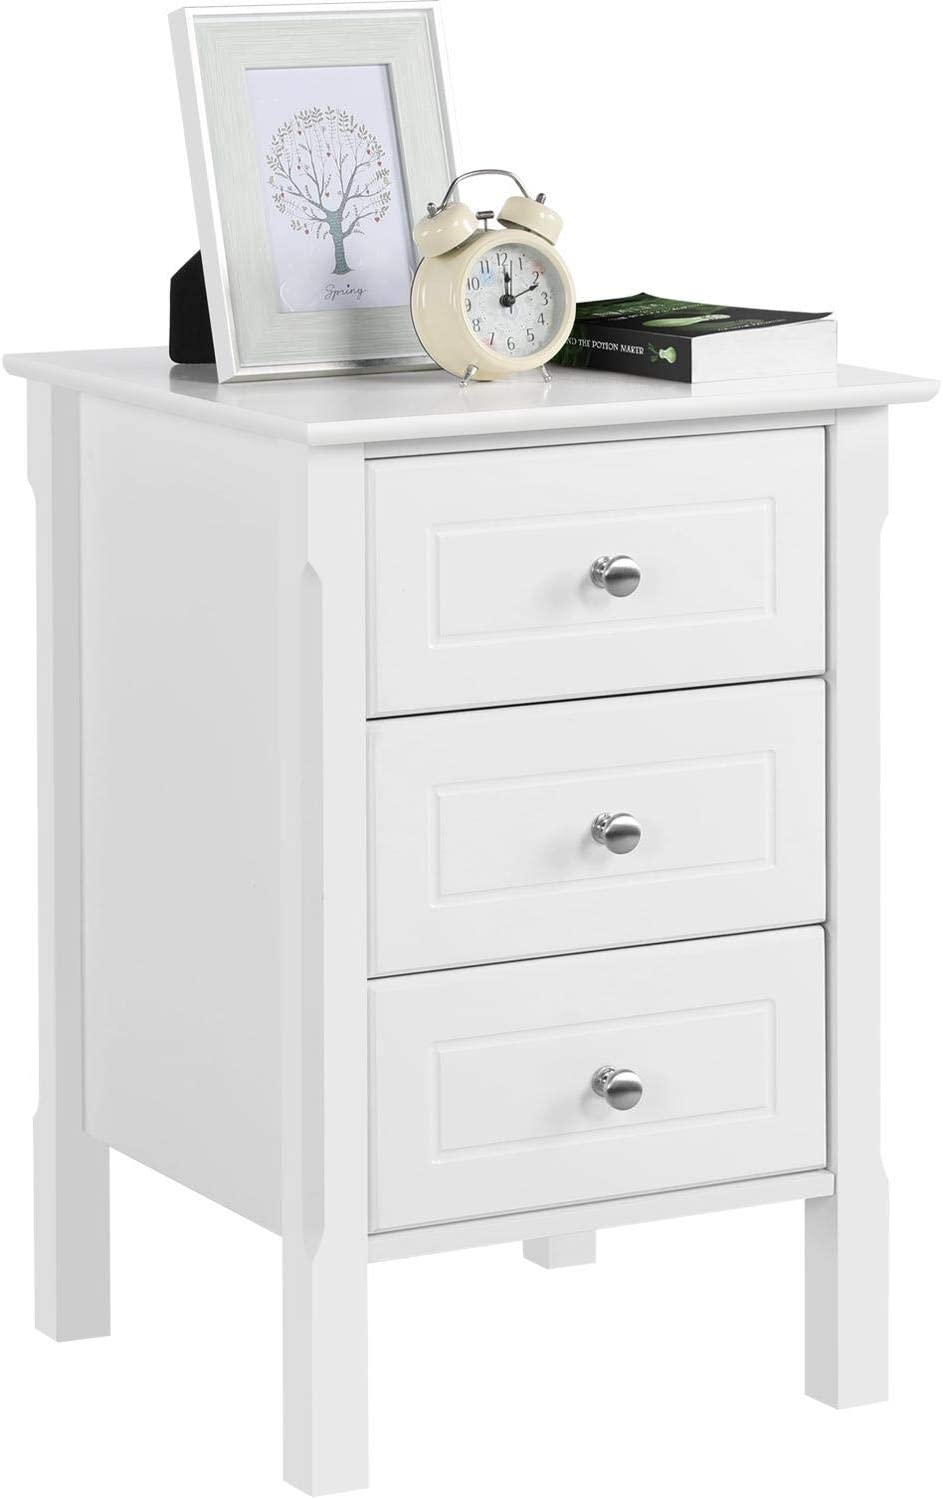 Topeakmart Wood Night Stand/Accent Table 12 Drawer Storage Organizer with  Solid Wood Legs Bedroom Side Storage, White